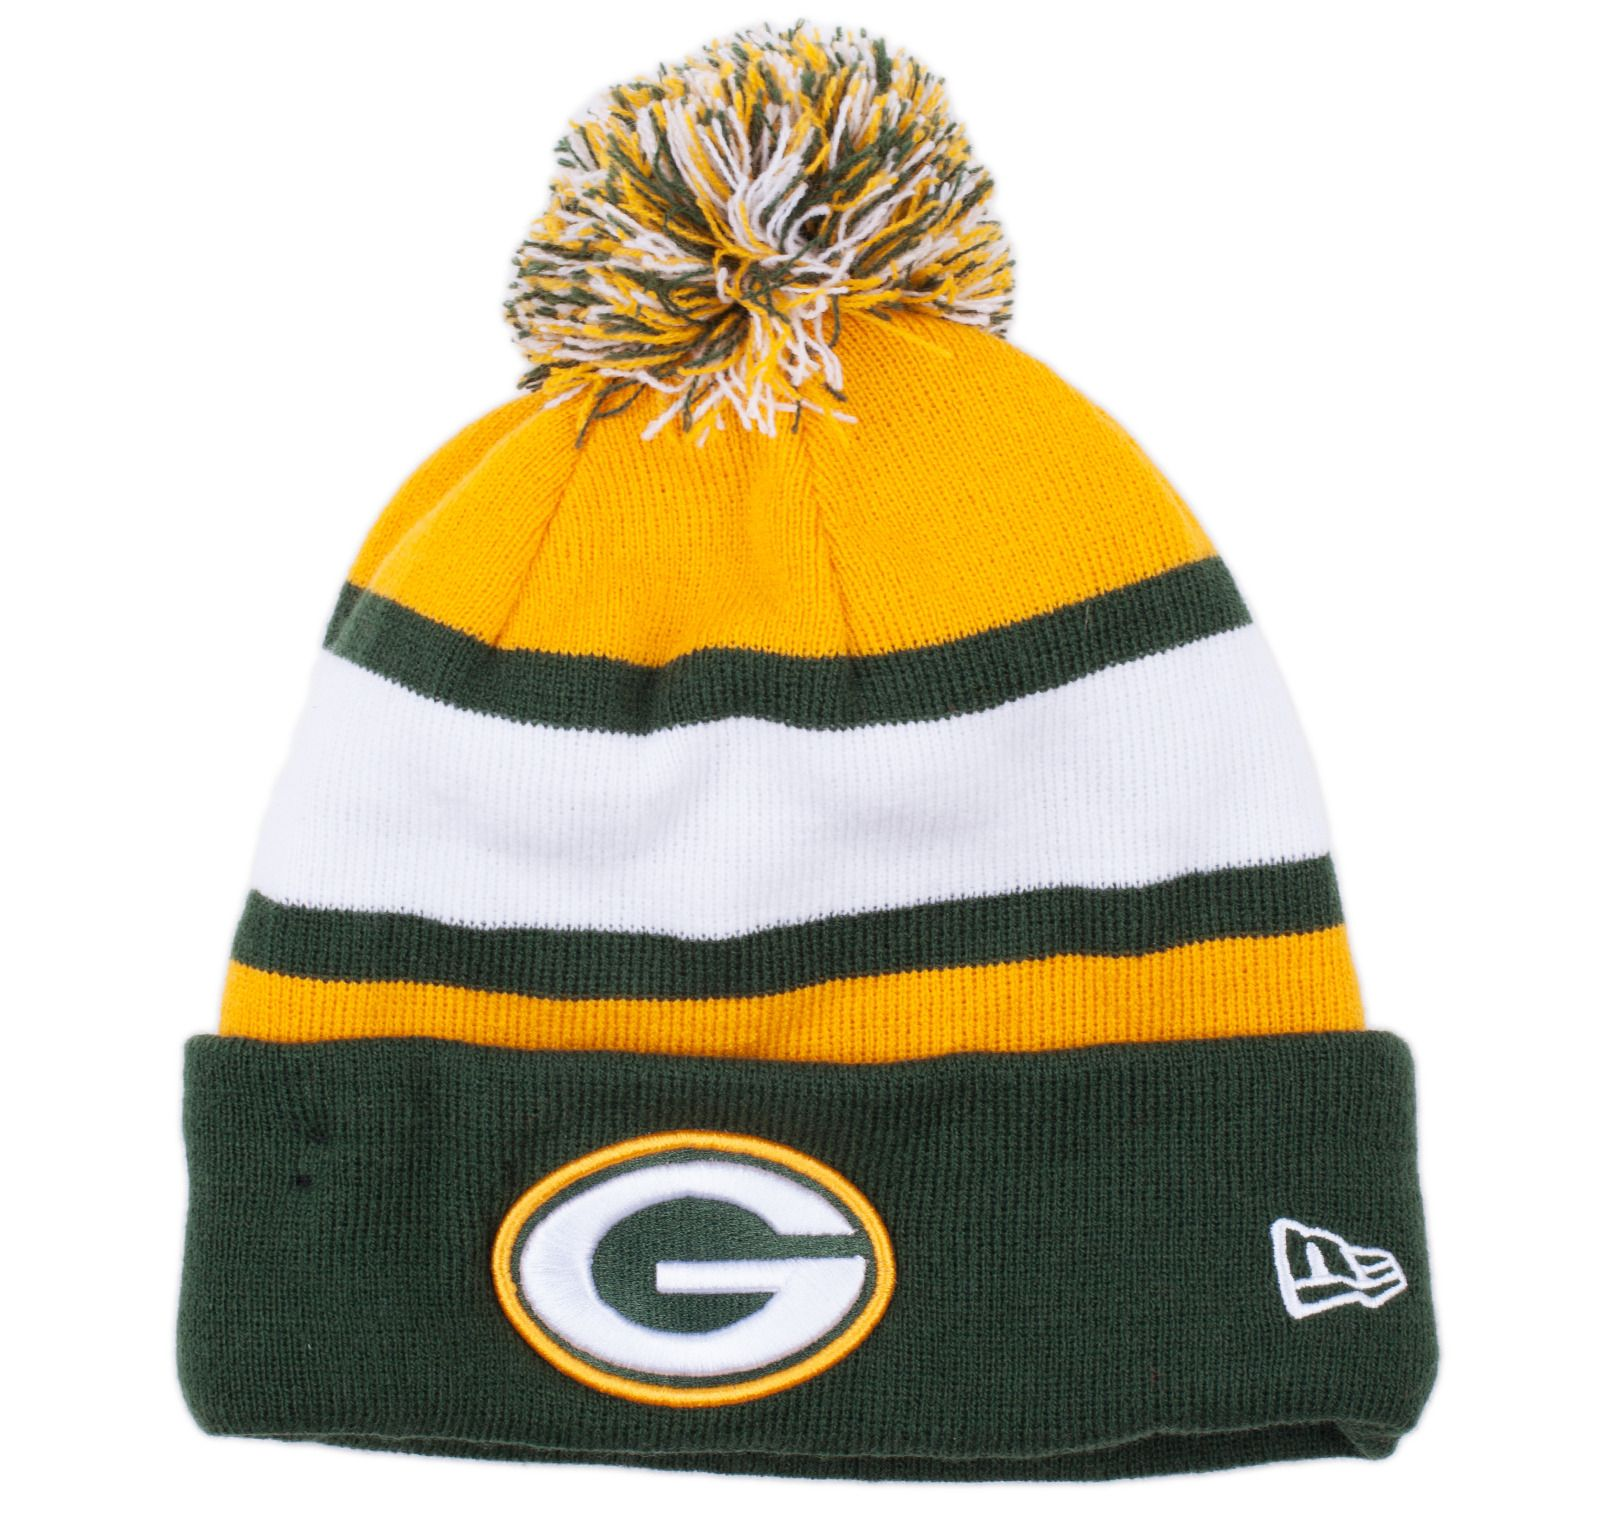 Caps Knit New Era Nfl 2013 Sport Knit Hat Green Bay Packers Dtlr Down Town Locker Room Your Fashion Your Lifestyle